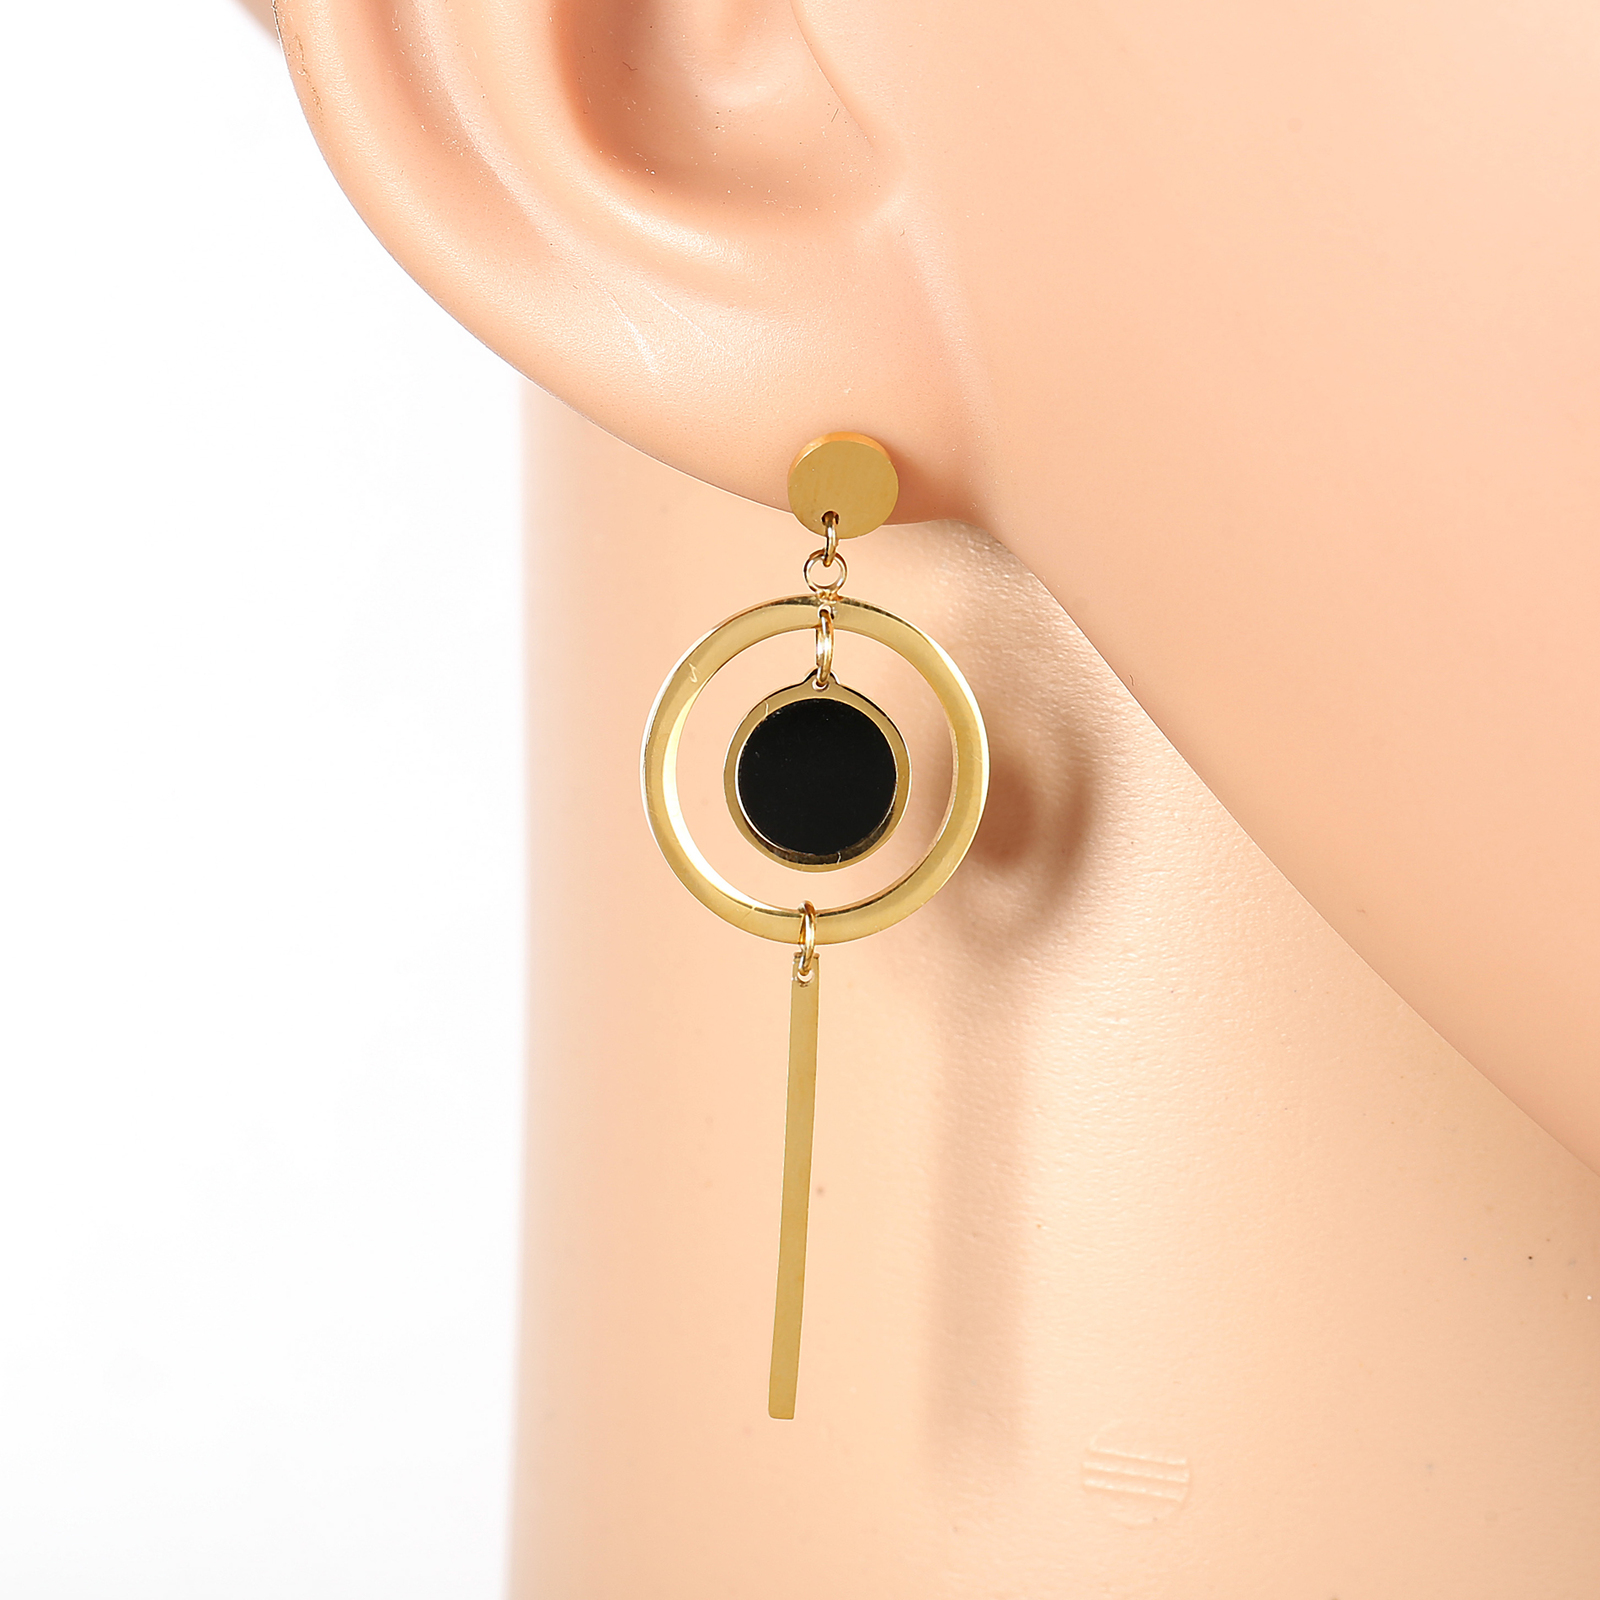 Primary image for Gold Tone Designer Drop Earrings, Jet Black Faux Onyx Circle & Dangling Bar